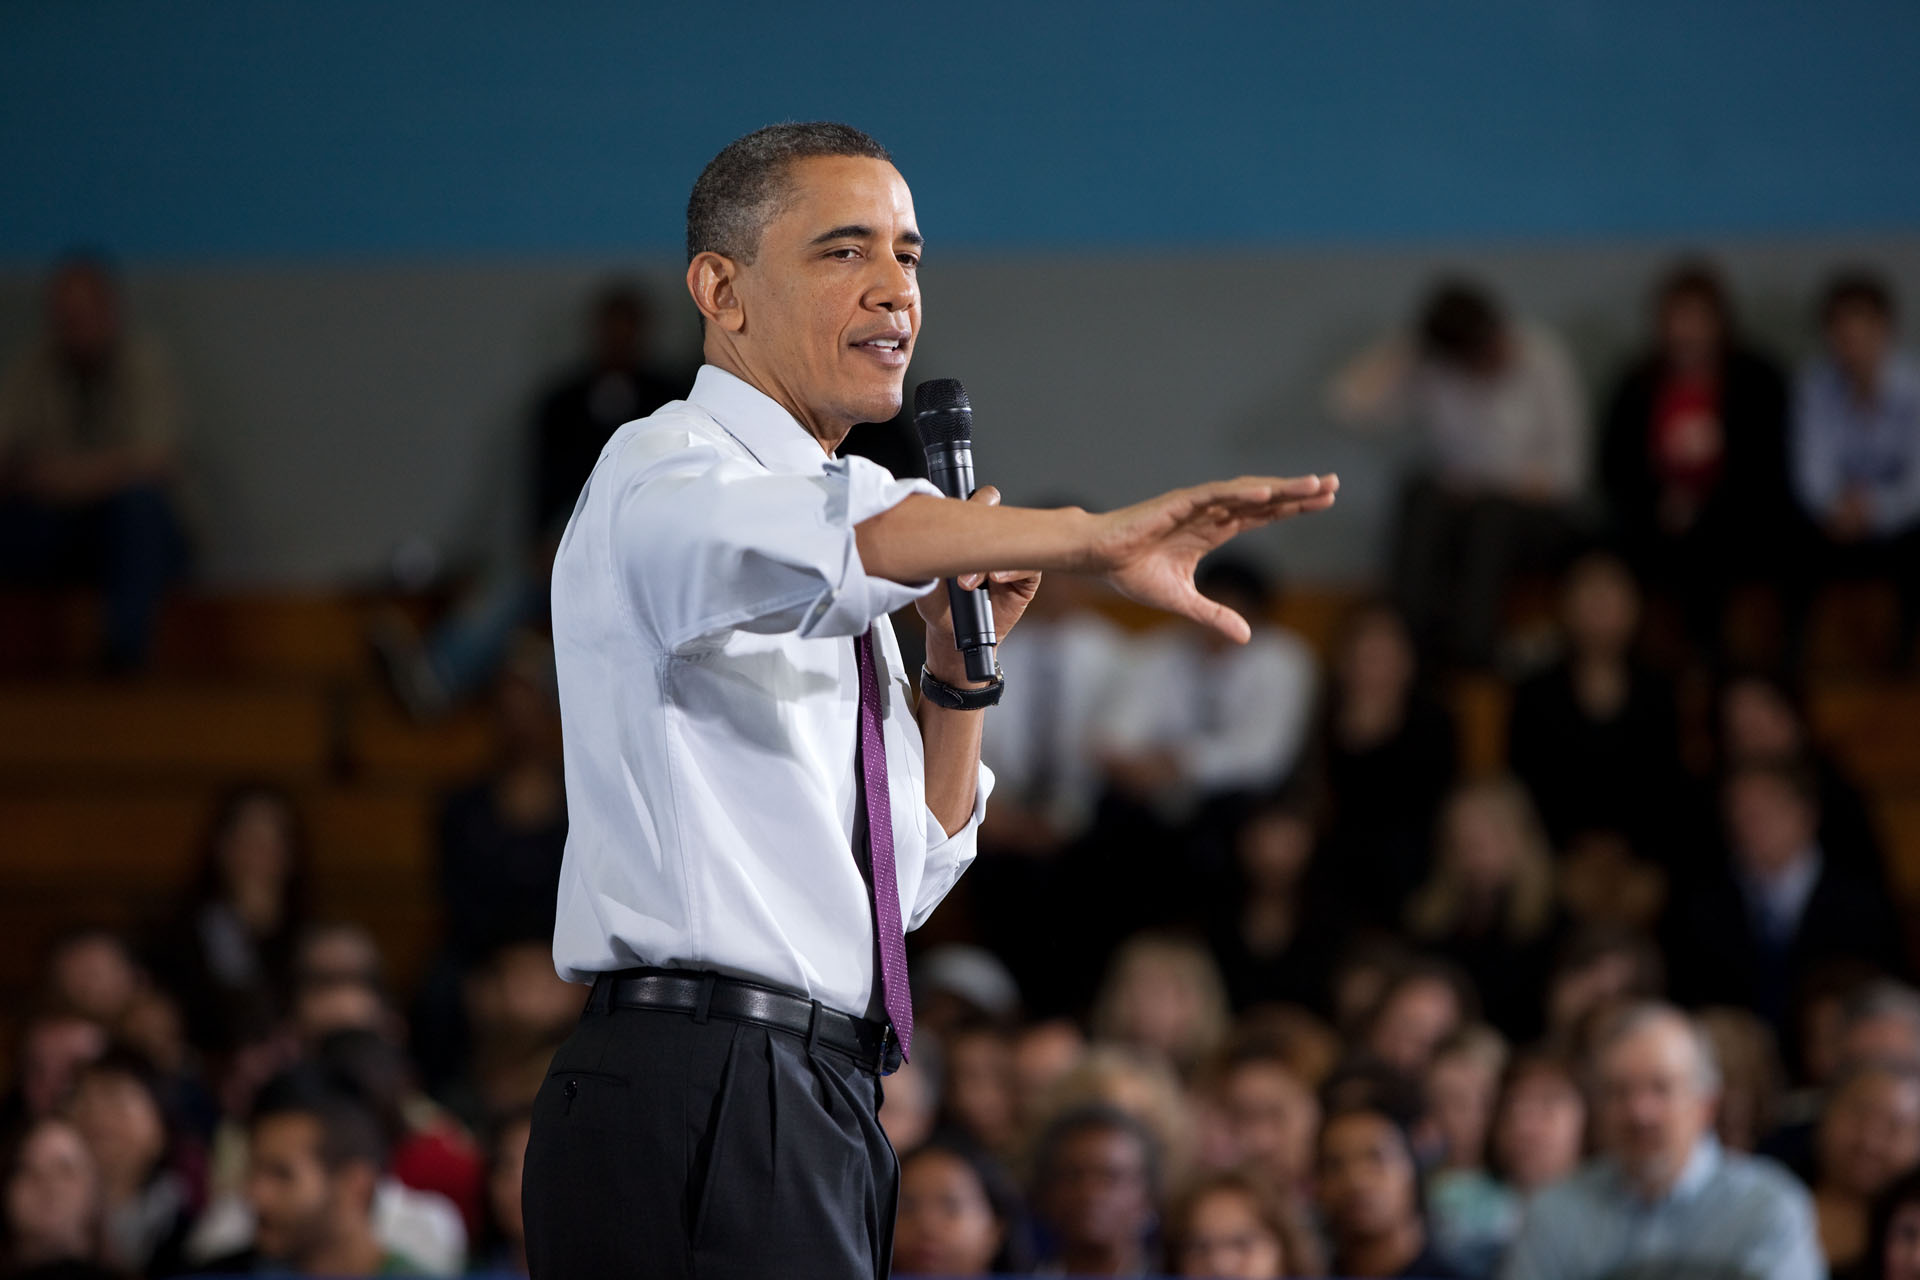 President Obama Talks Deficit Reduction at Northern Virginia Community College